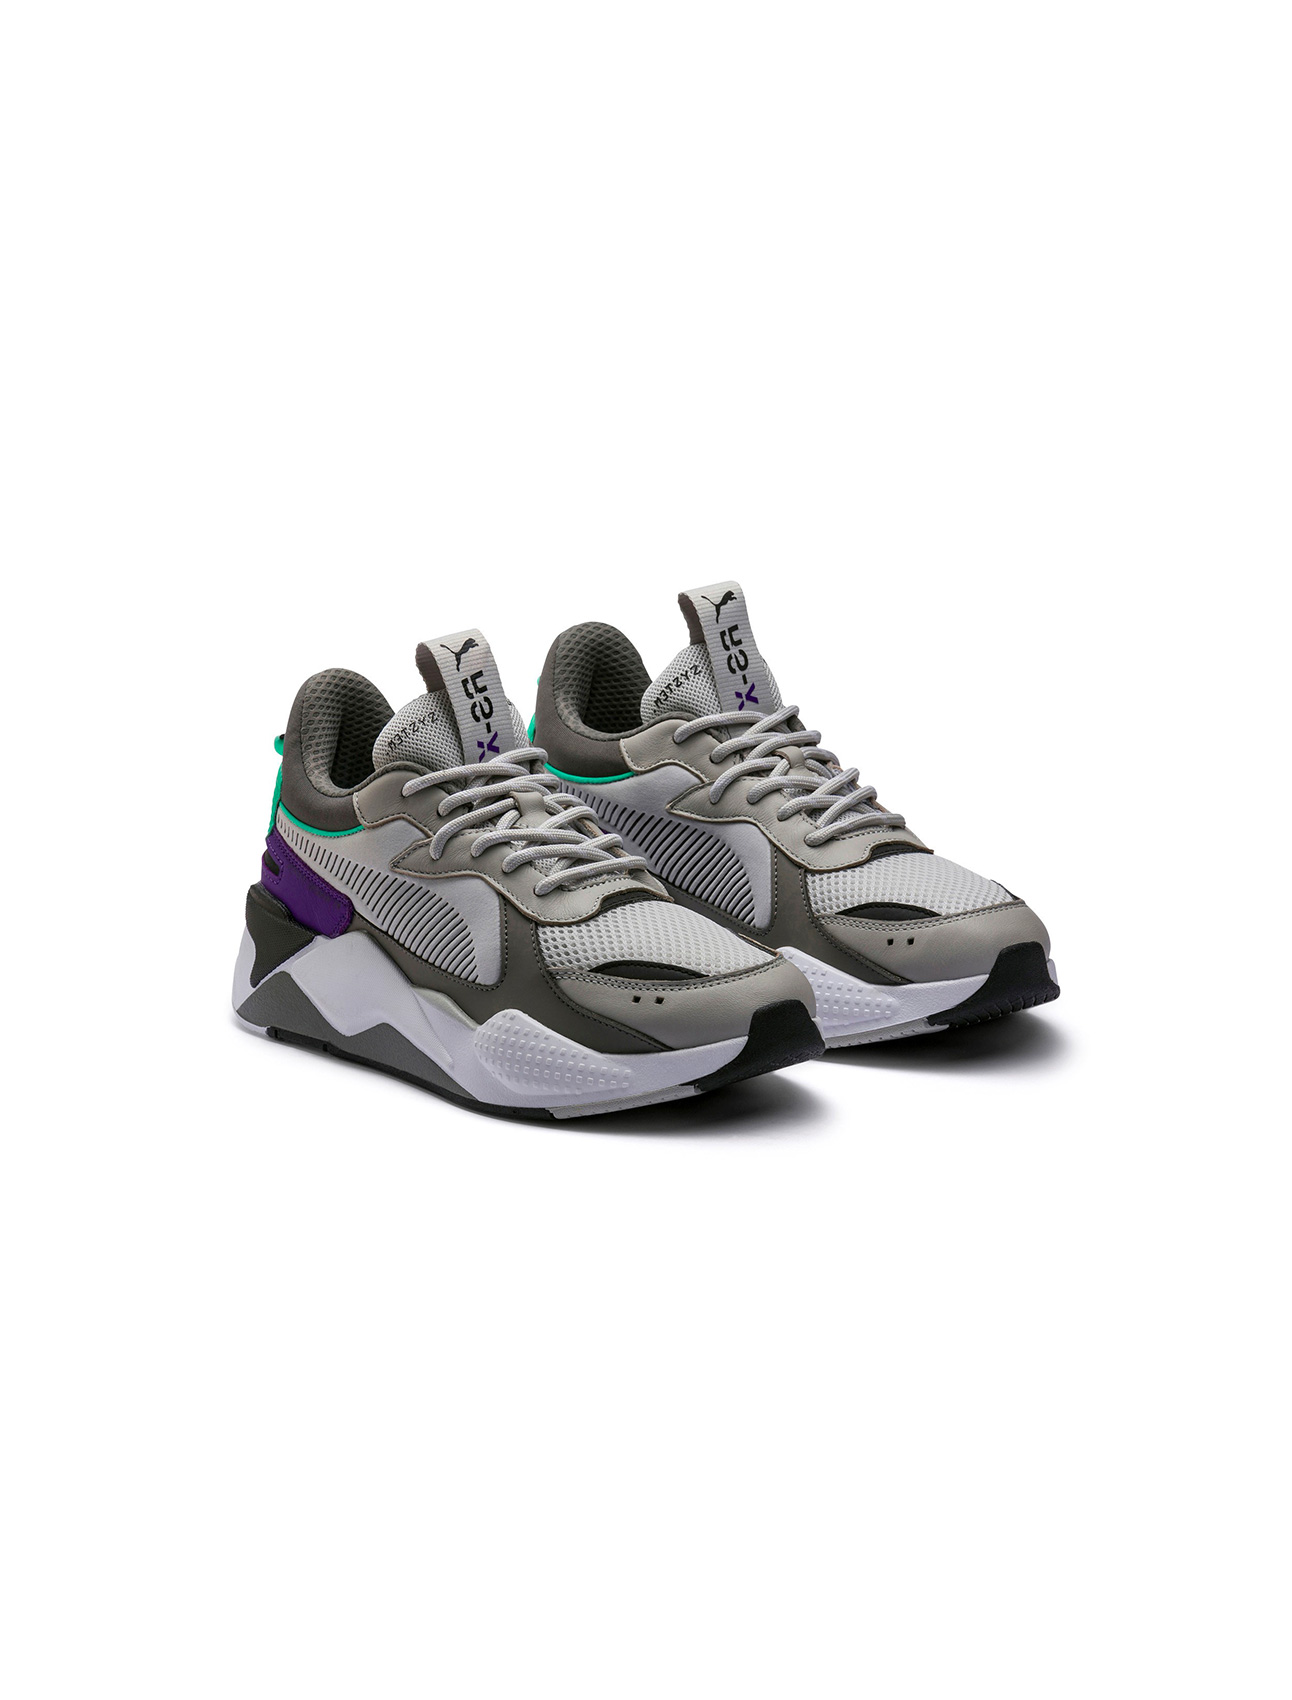 Puma Rs-X Tracks Gray Violet-Charcoal Gray | Wooden Store